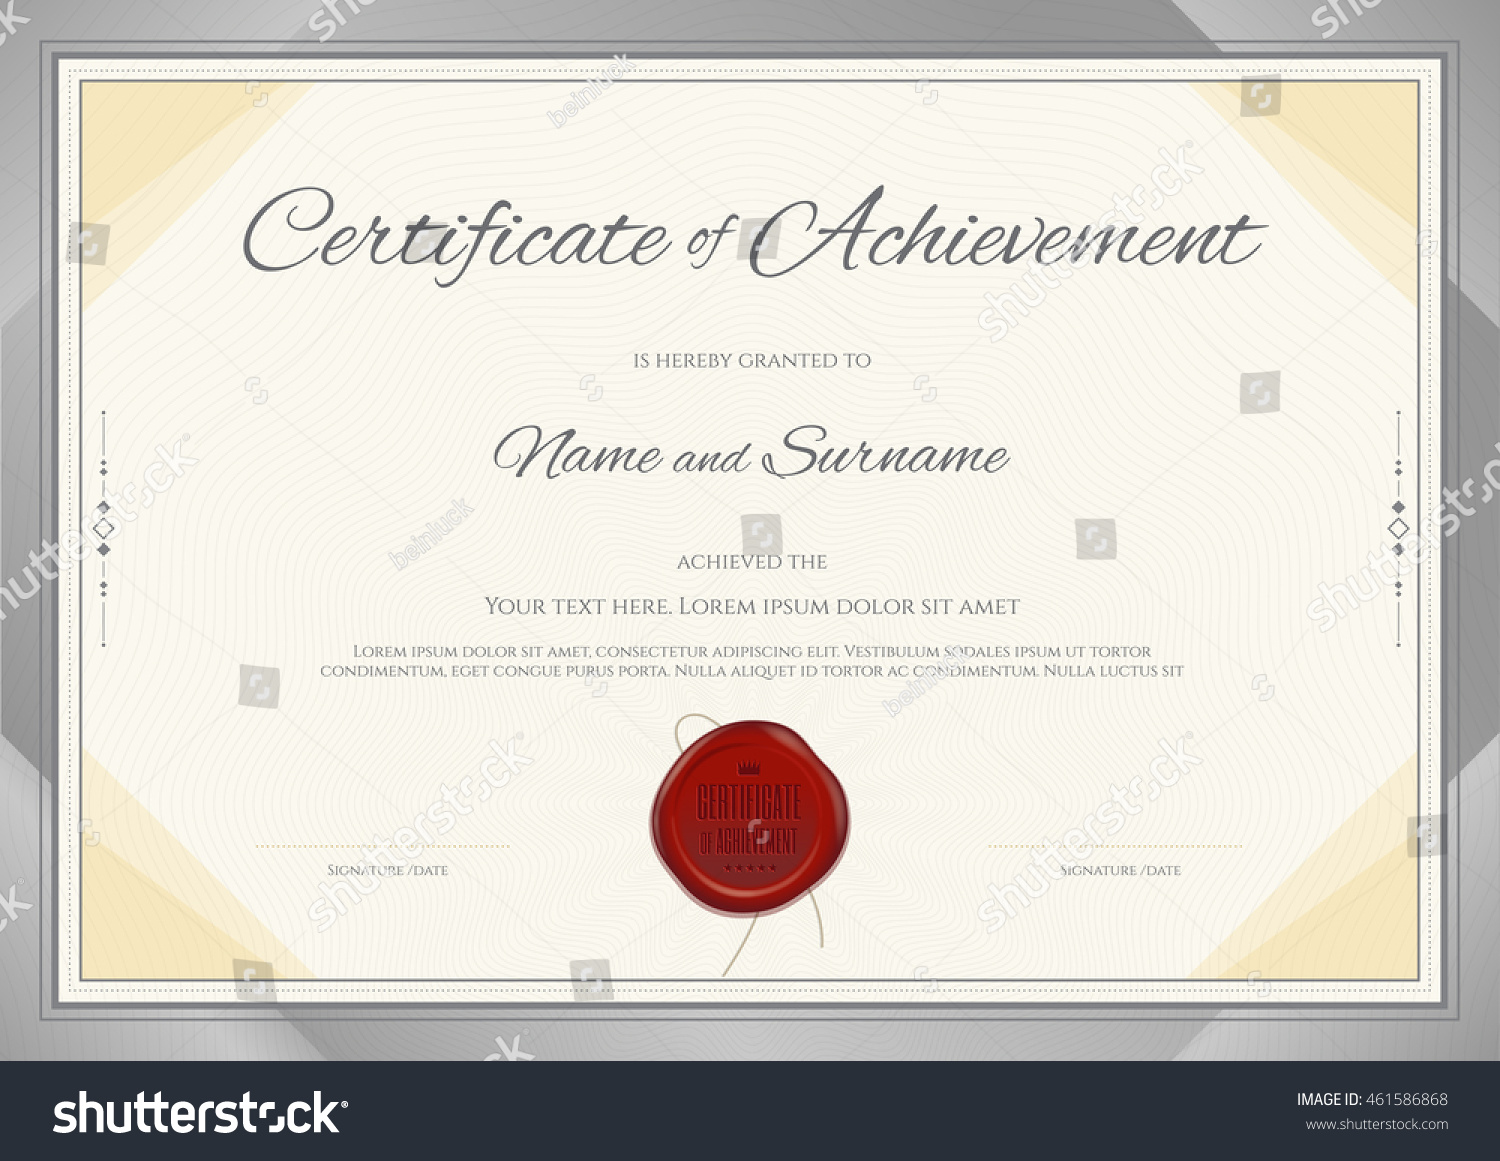 Da Form 2442 Certificate Of Achievement Template